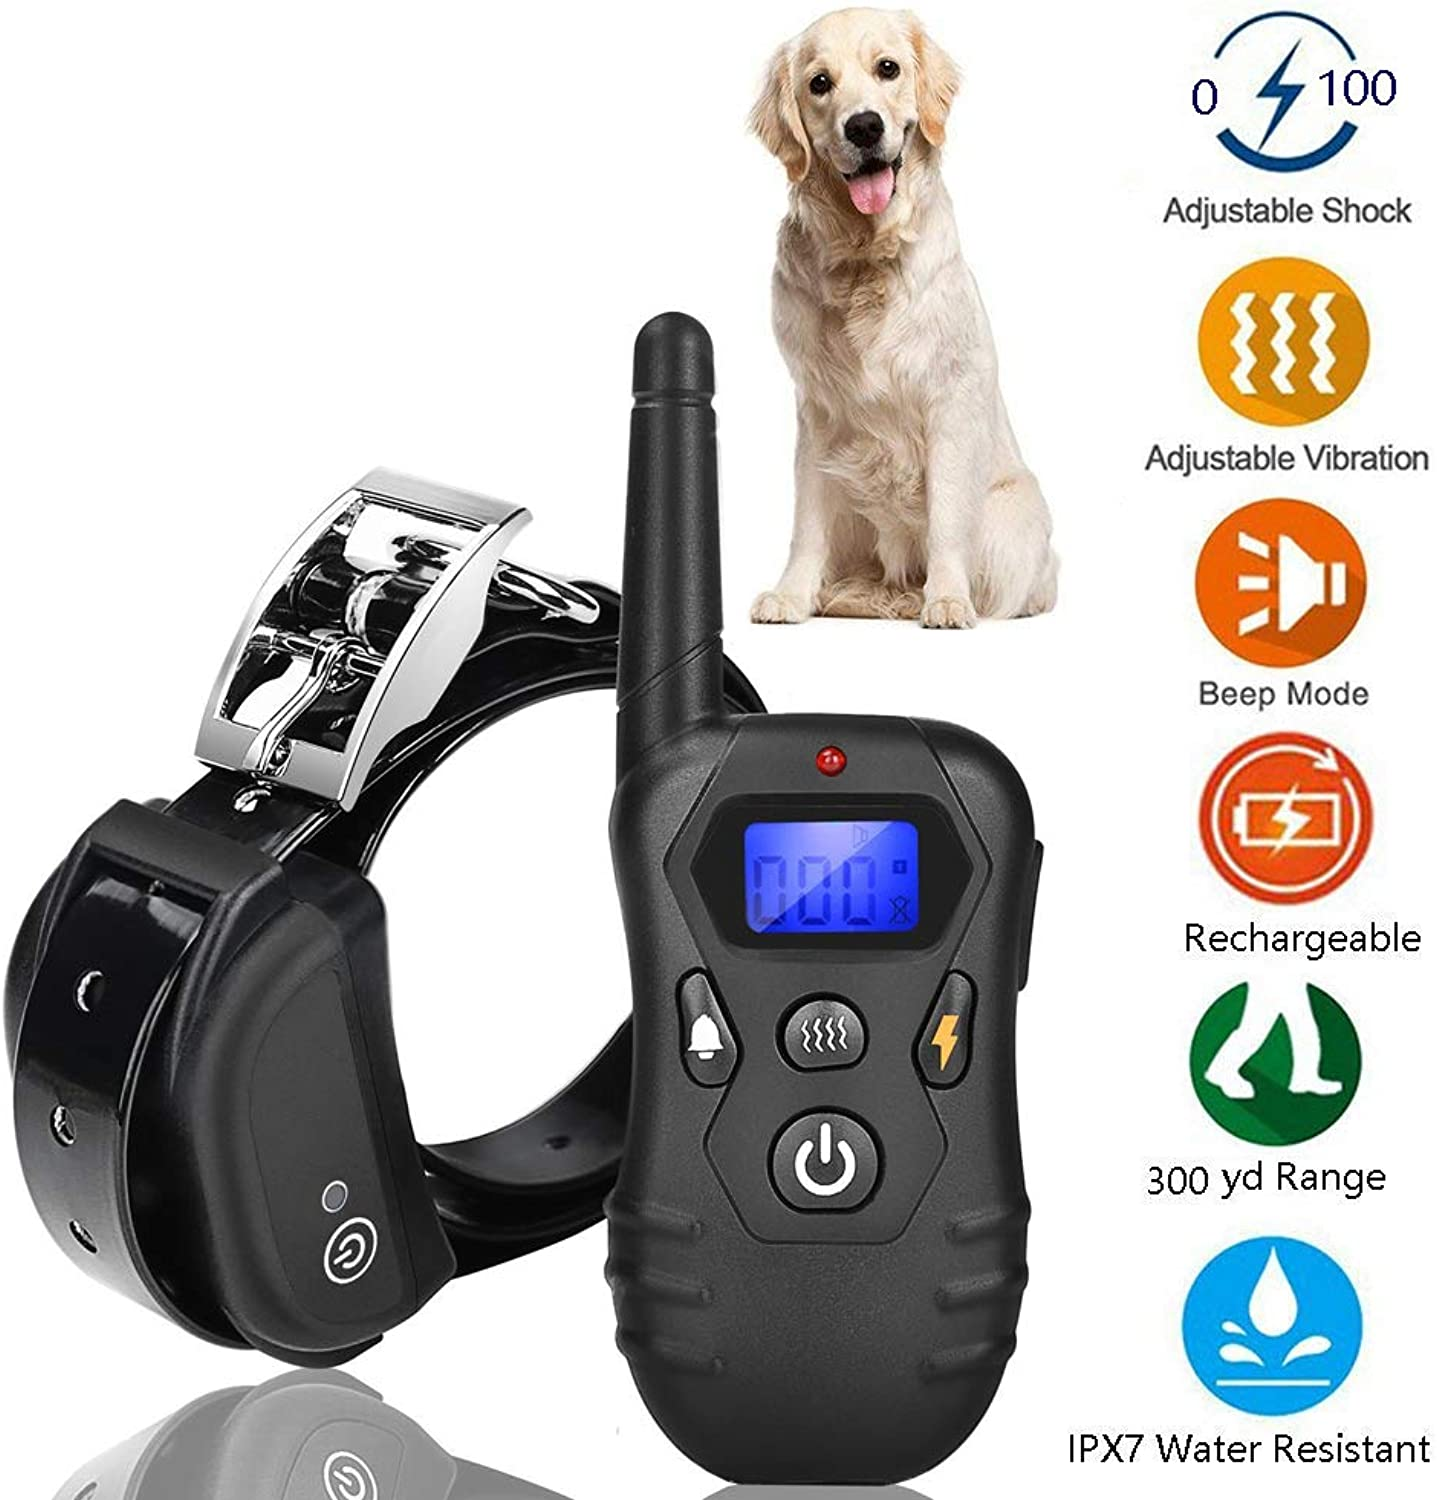 M3M Remote Dog Bark Control with 300 Yards Rechargeable and 100% Waterproof 1100 Level Suitable of Dogs(2018 Updated Version)